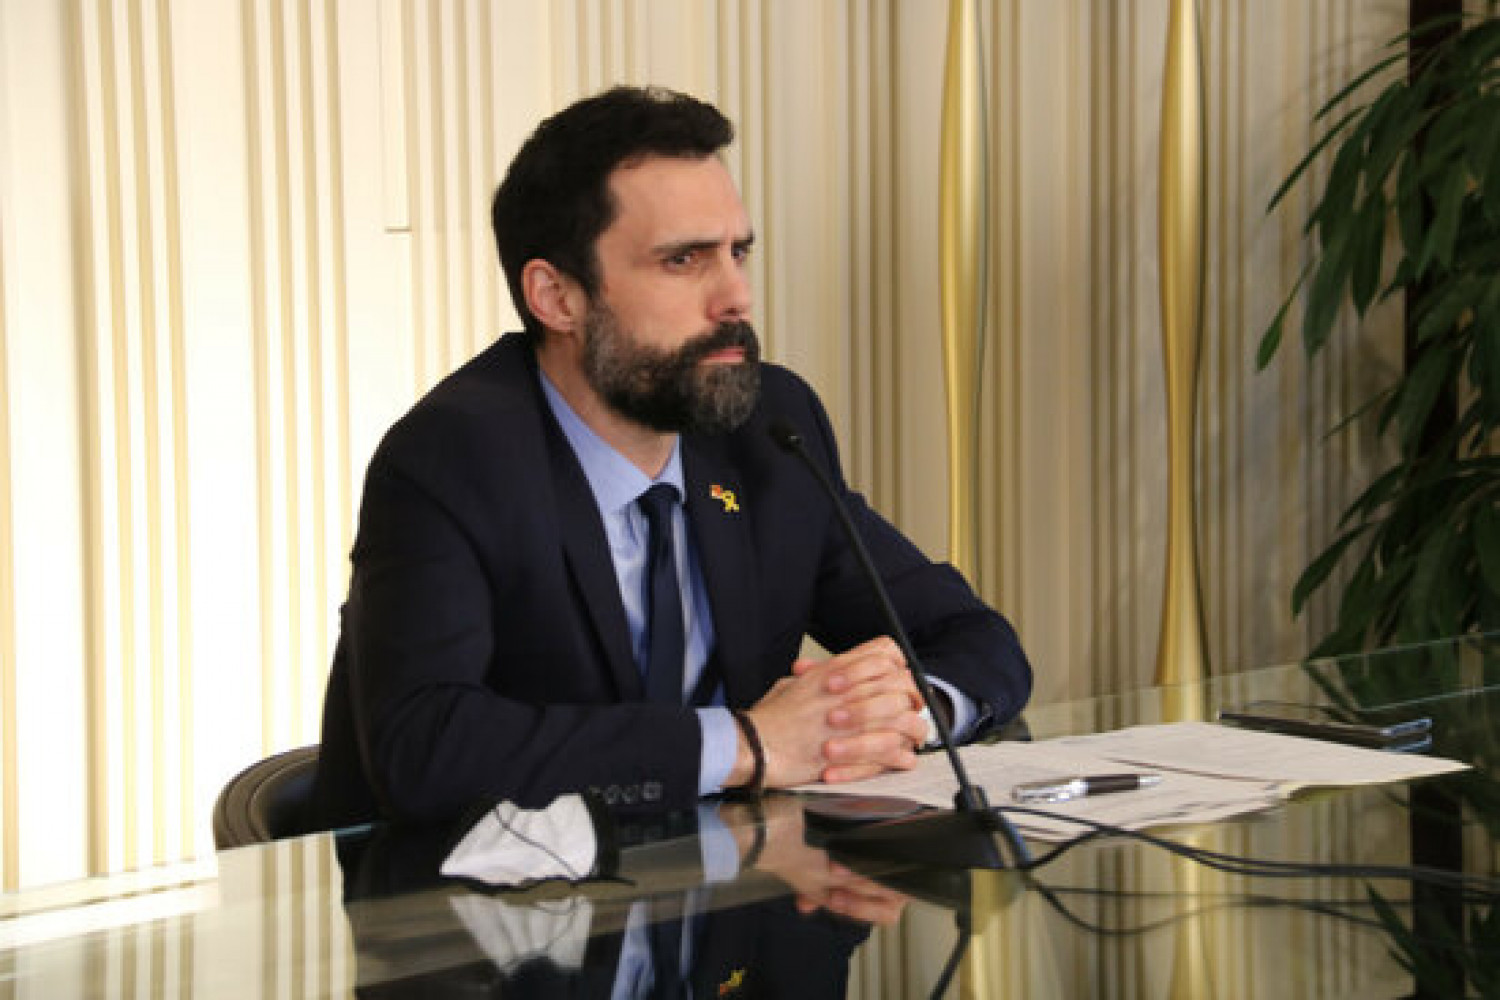 Catalan parliament speaker Roger Torrent during a Francophonie Parliamentary Assembly meeting on January 26, 2021 (by Eli Don)